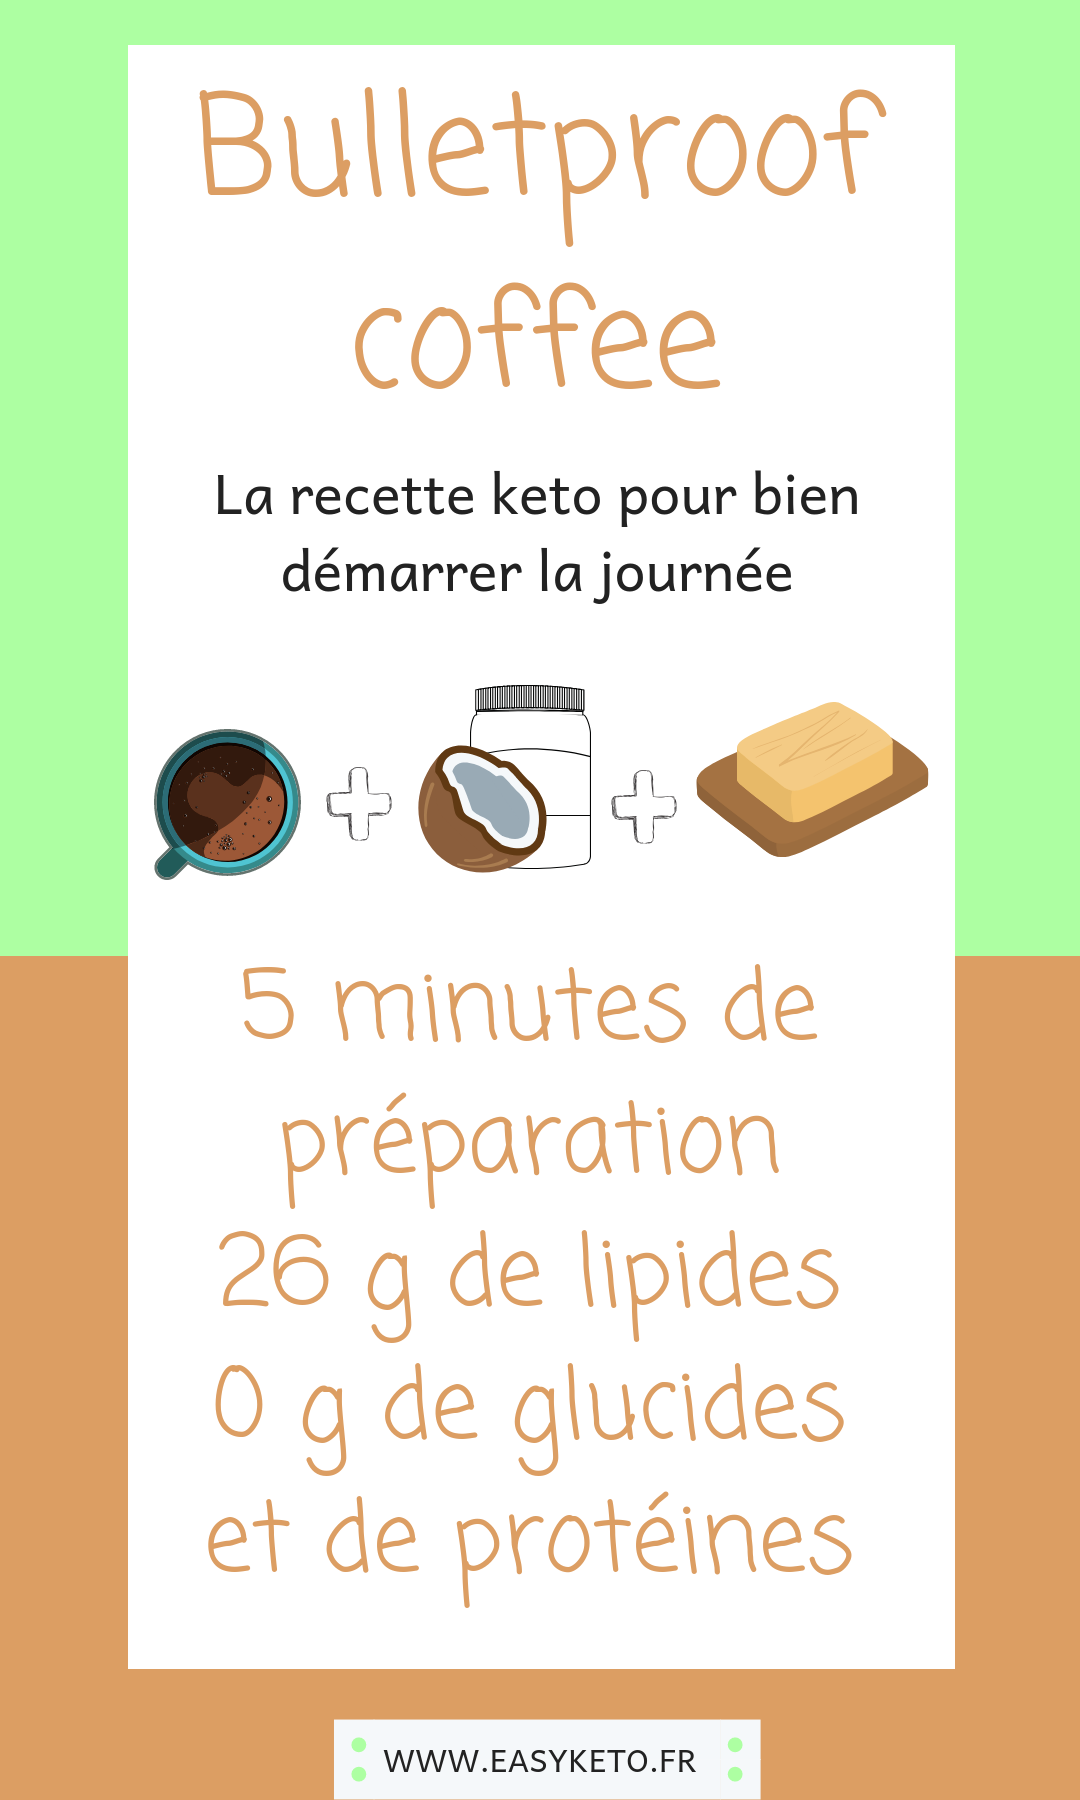 régime alimentaire lchf uk